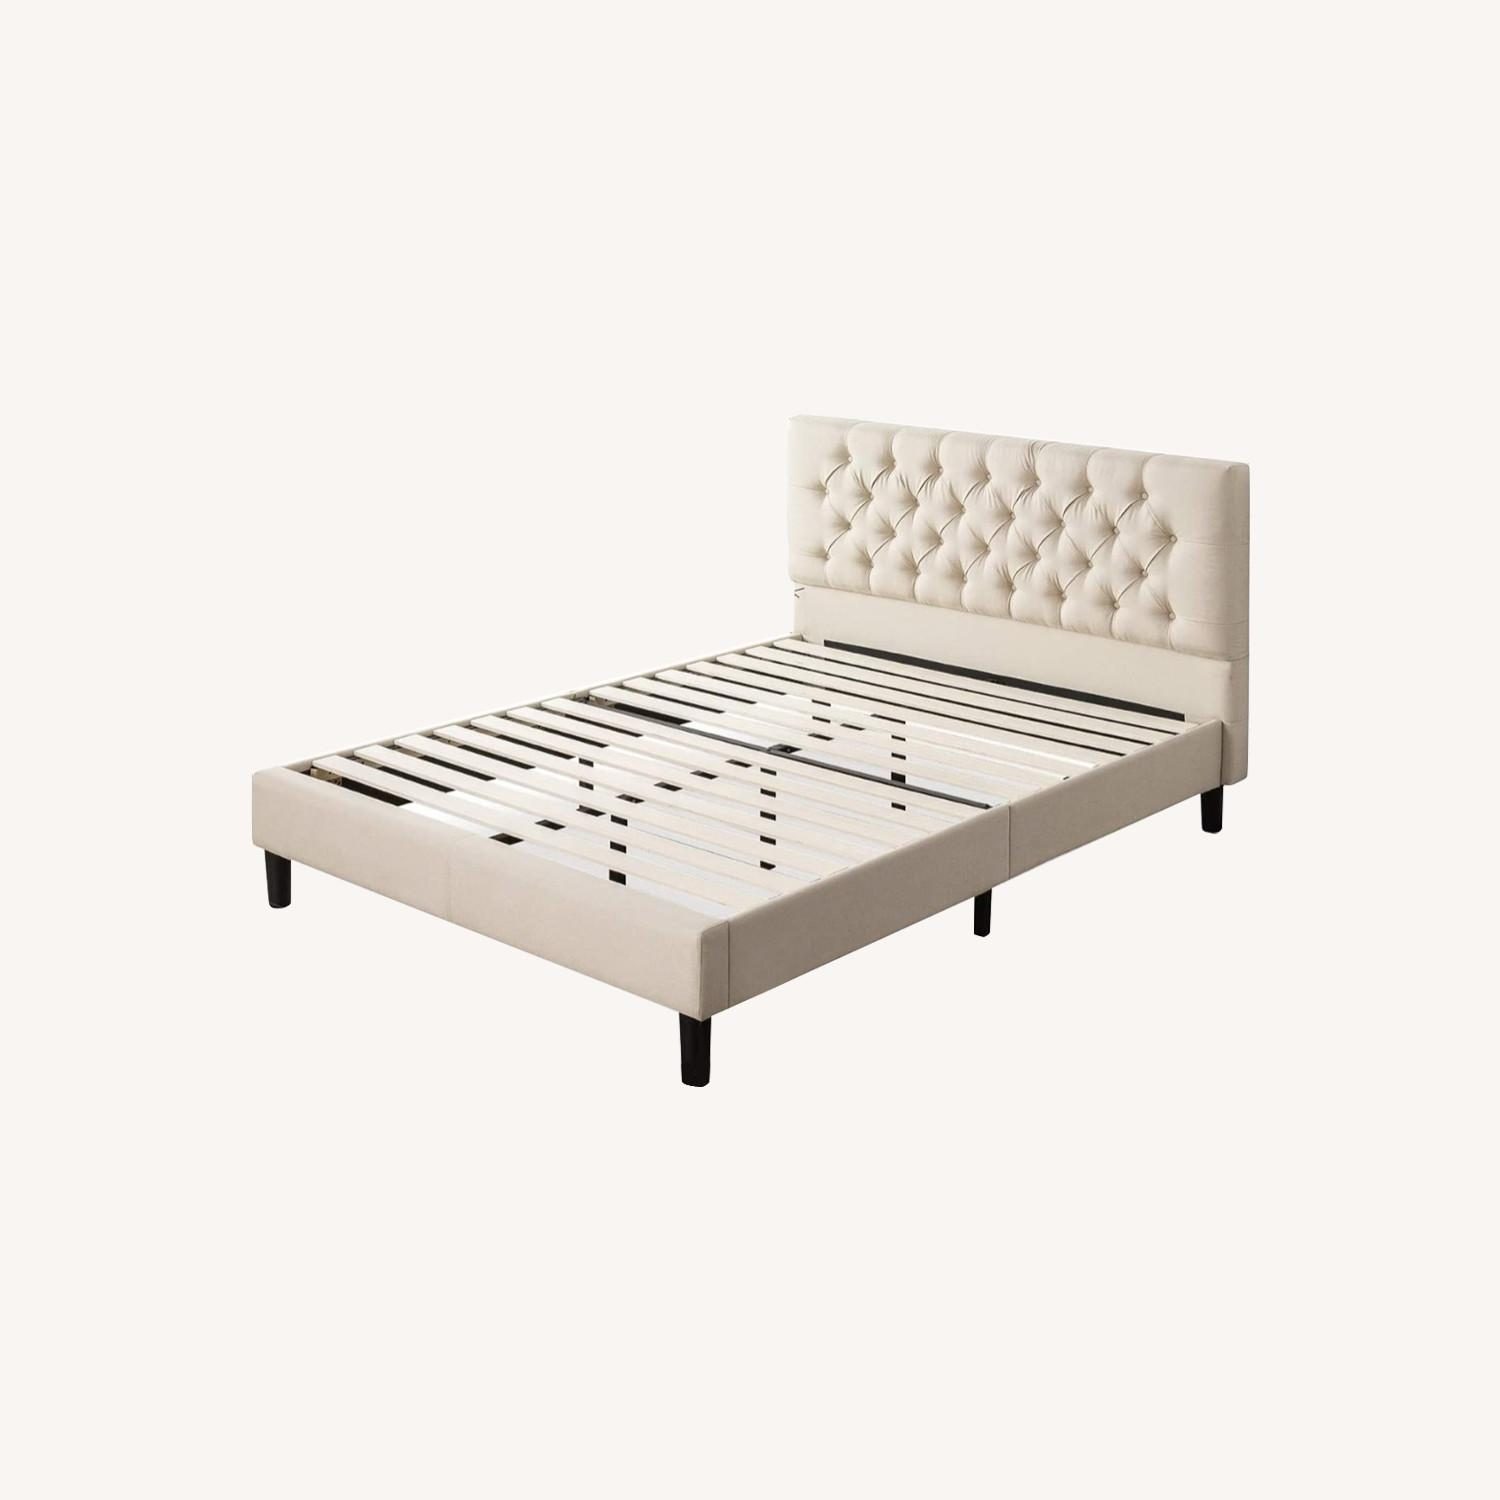 Zin Home Full Tufted Bed Frame - image-0